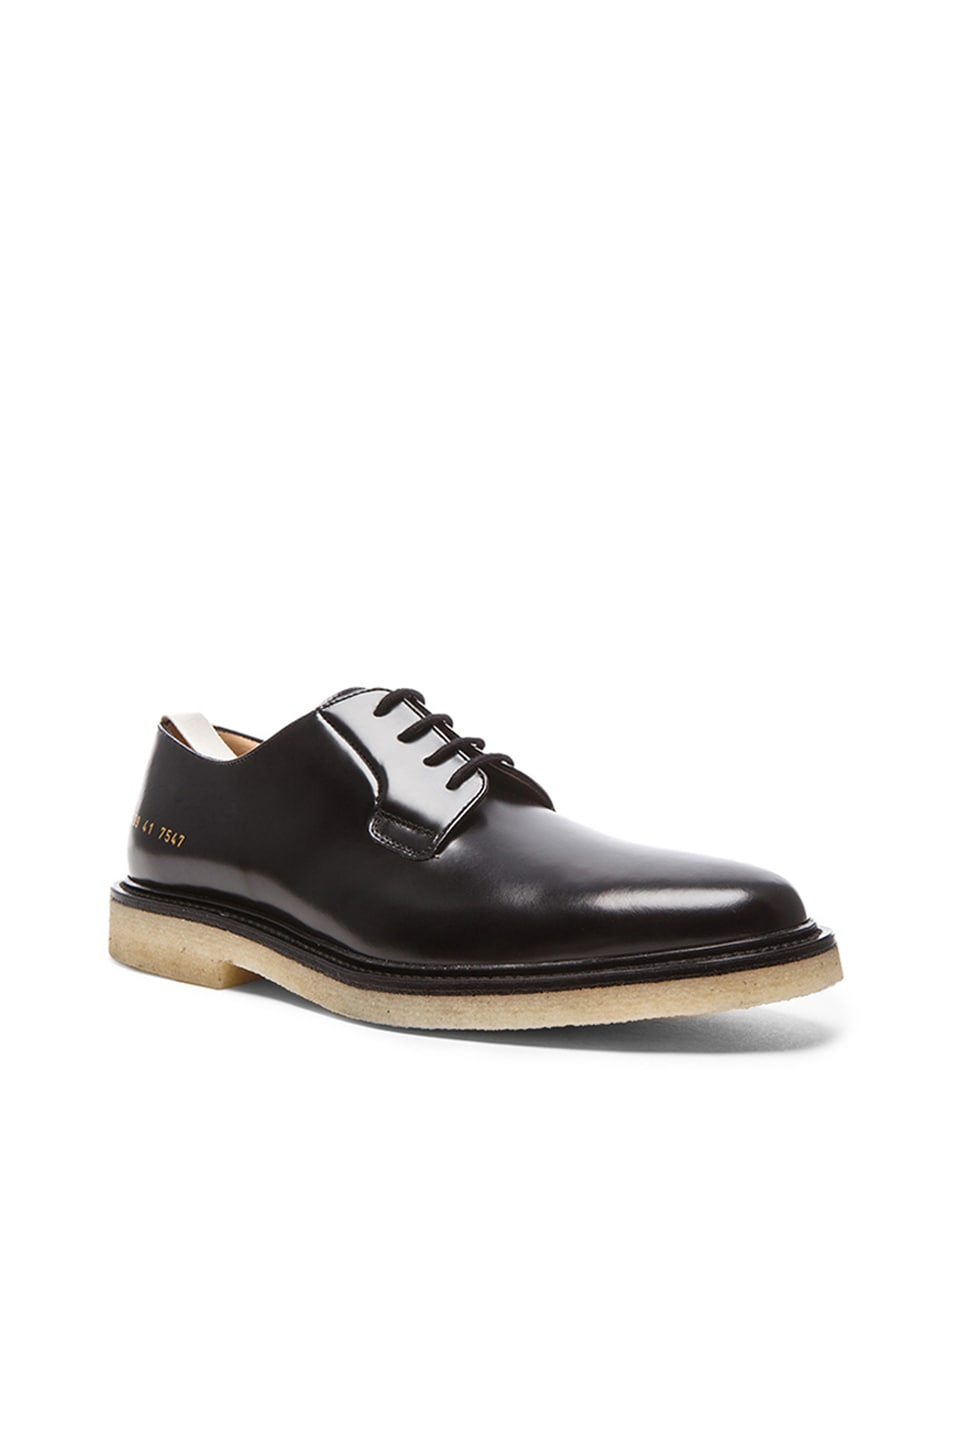 44ed30118422 Image 1 of Common Projects Cadet Leather Derby Shoes in Black